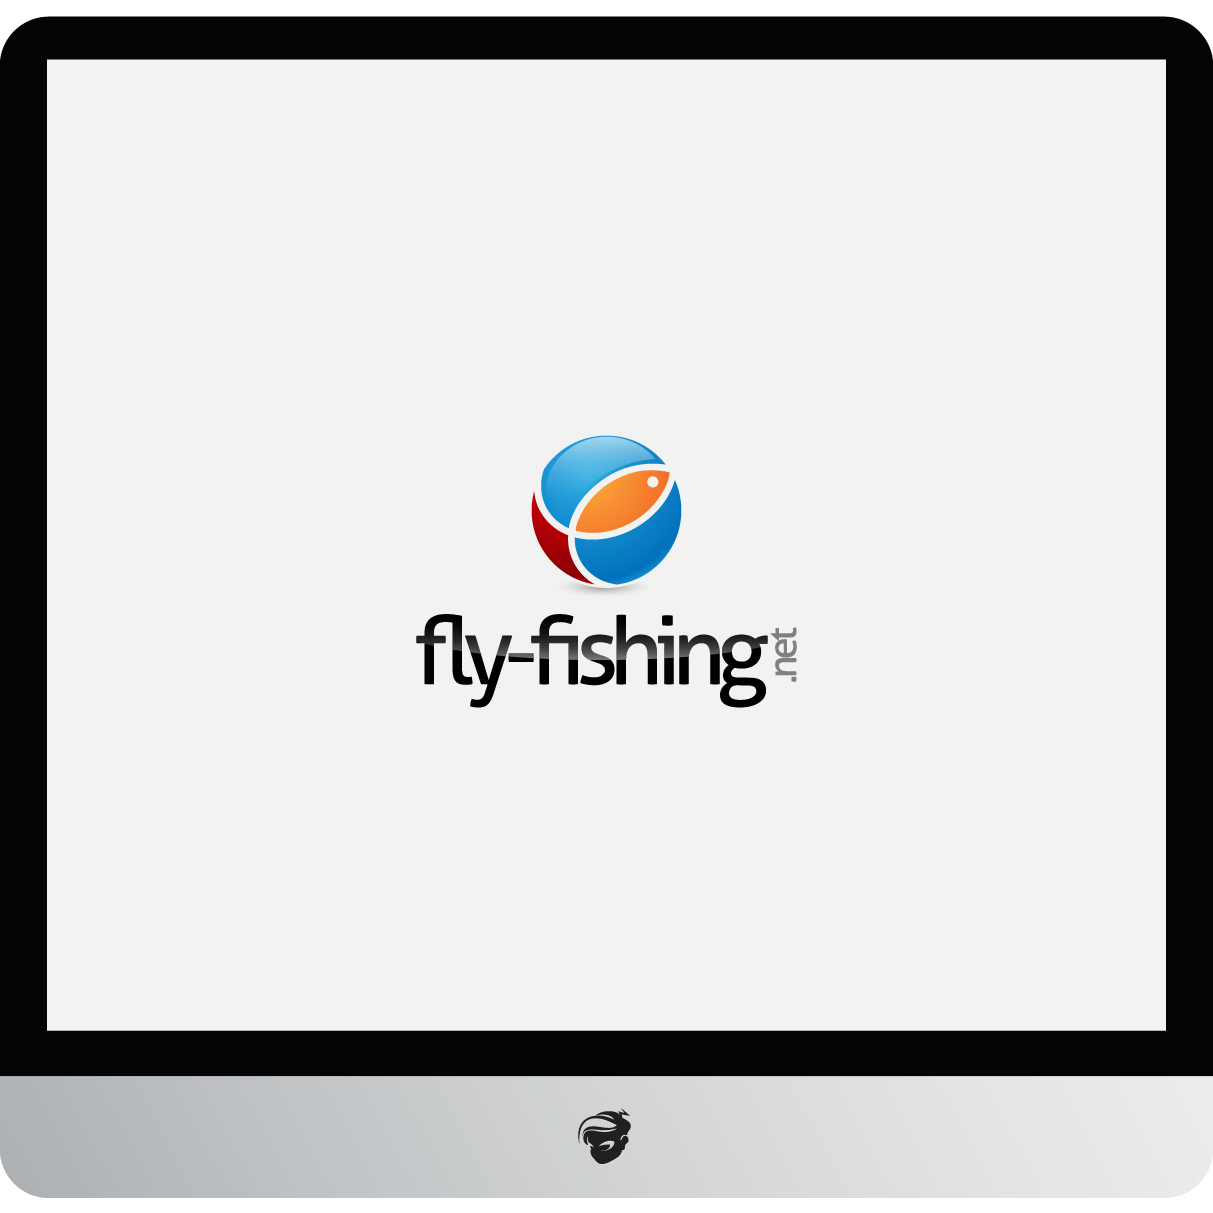 Logo Design by zesthar - Entry No. 125 in the Logo Design Contest Artistic Logo Design for fly-fishing.net.